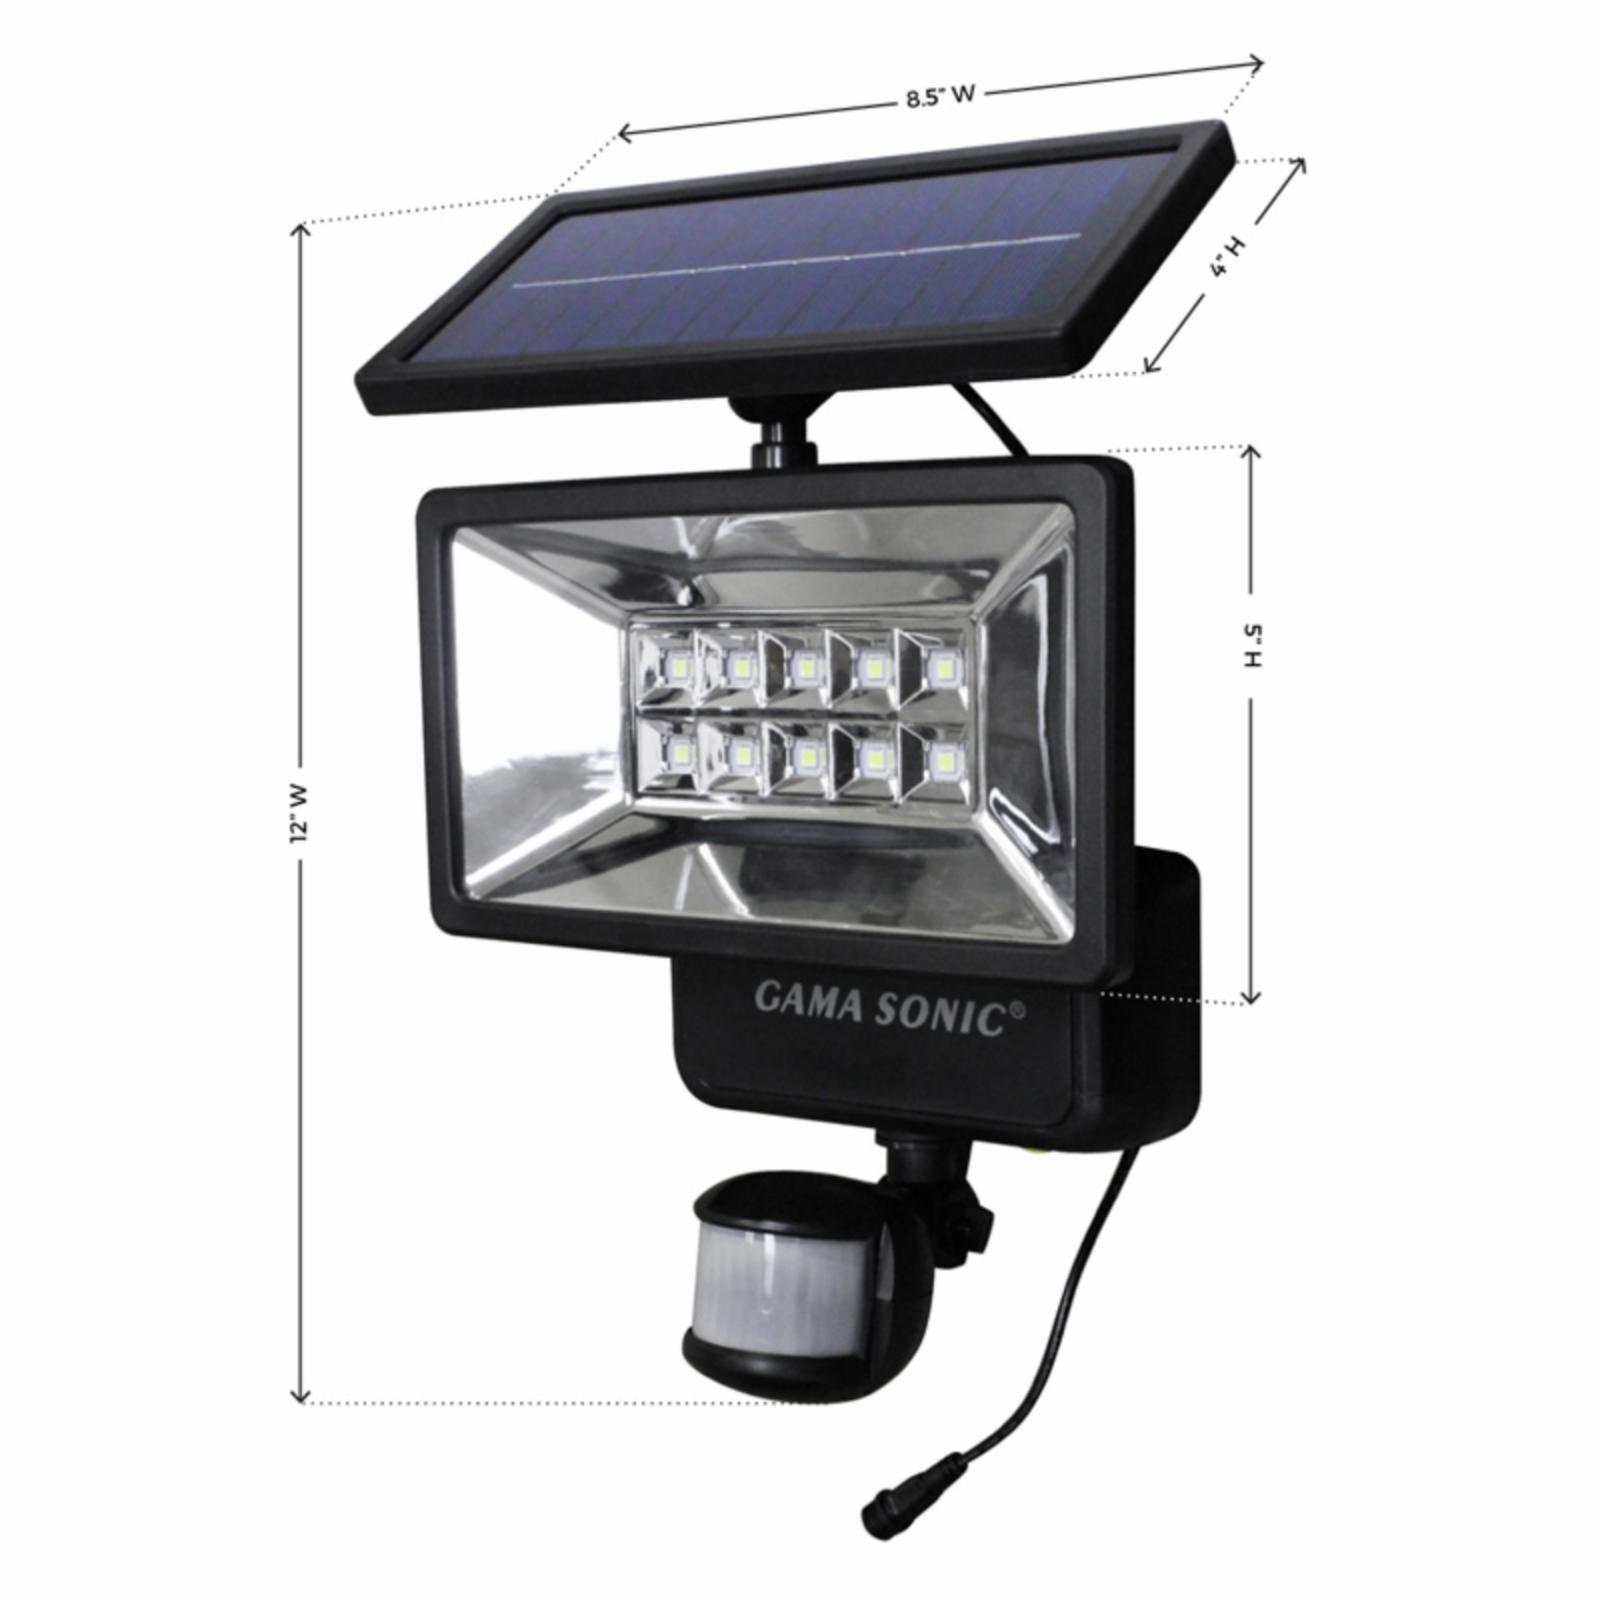 Outdoor Security Lights With Alarm: Gama Sonic Outdoor Solar Security Light - Motion Sensor